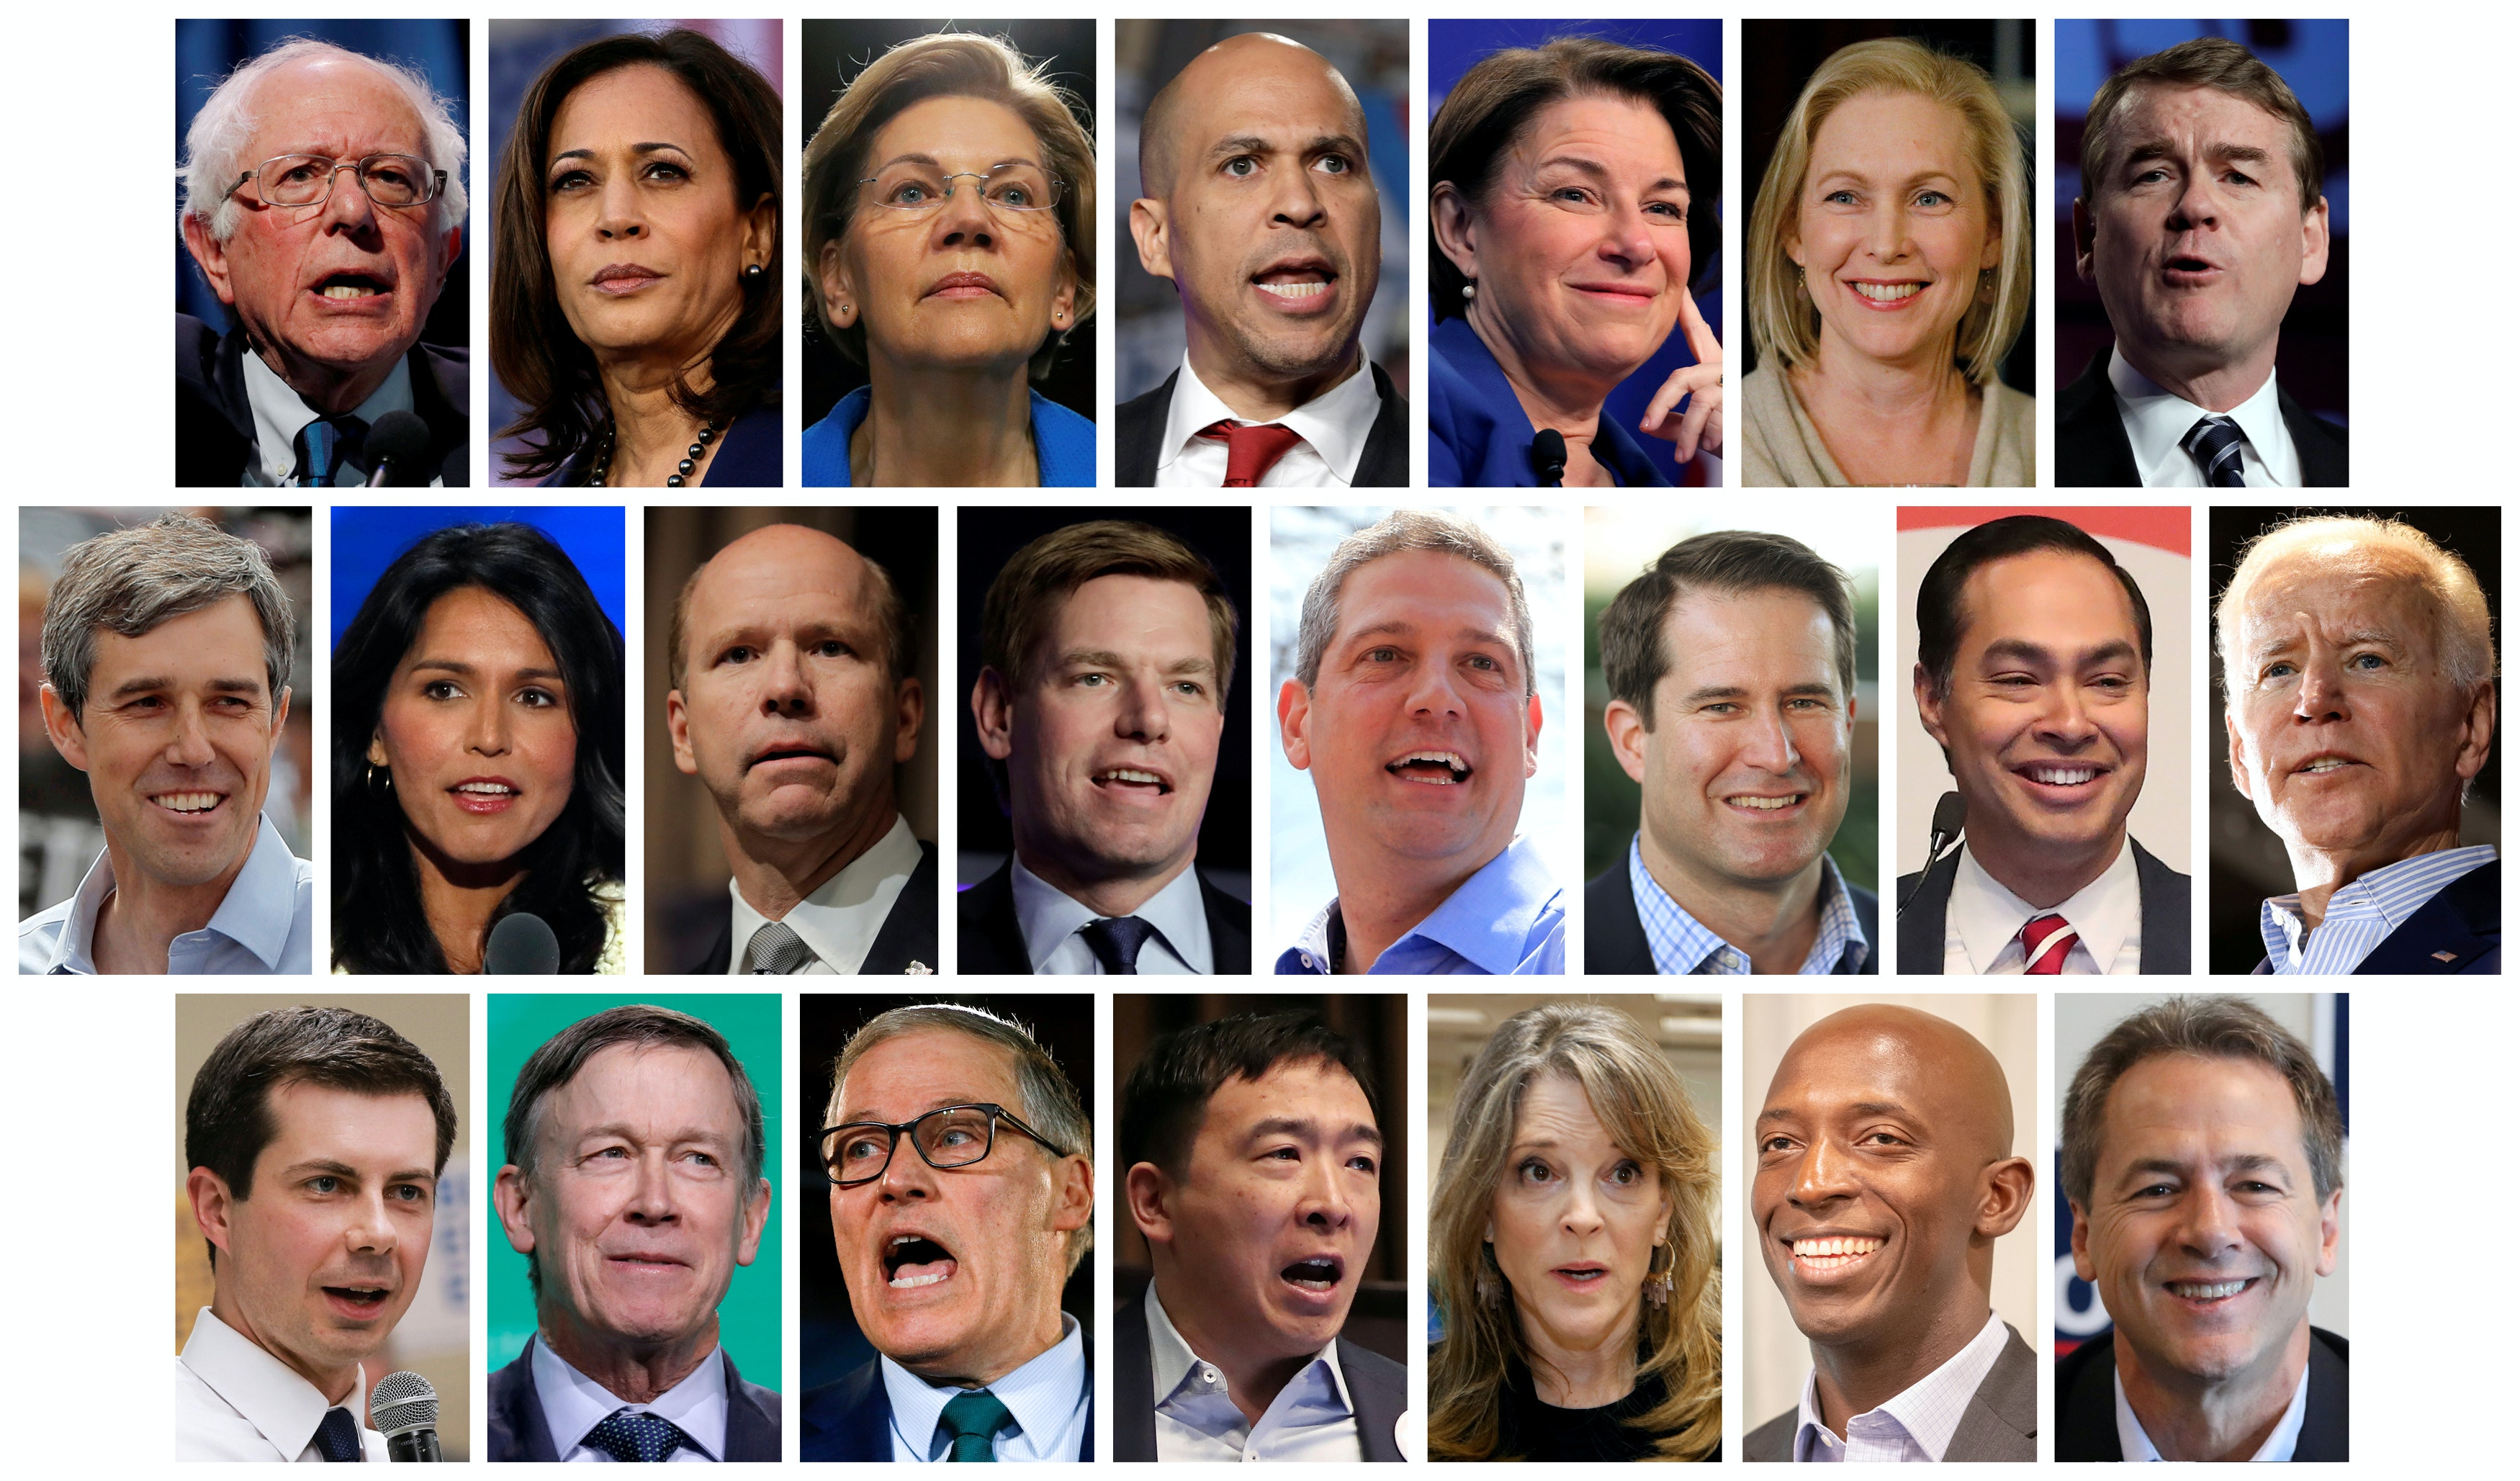 Why are there so many candidates for president?